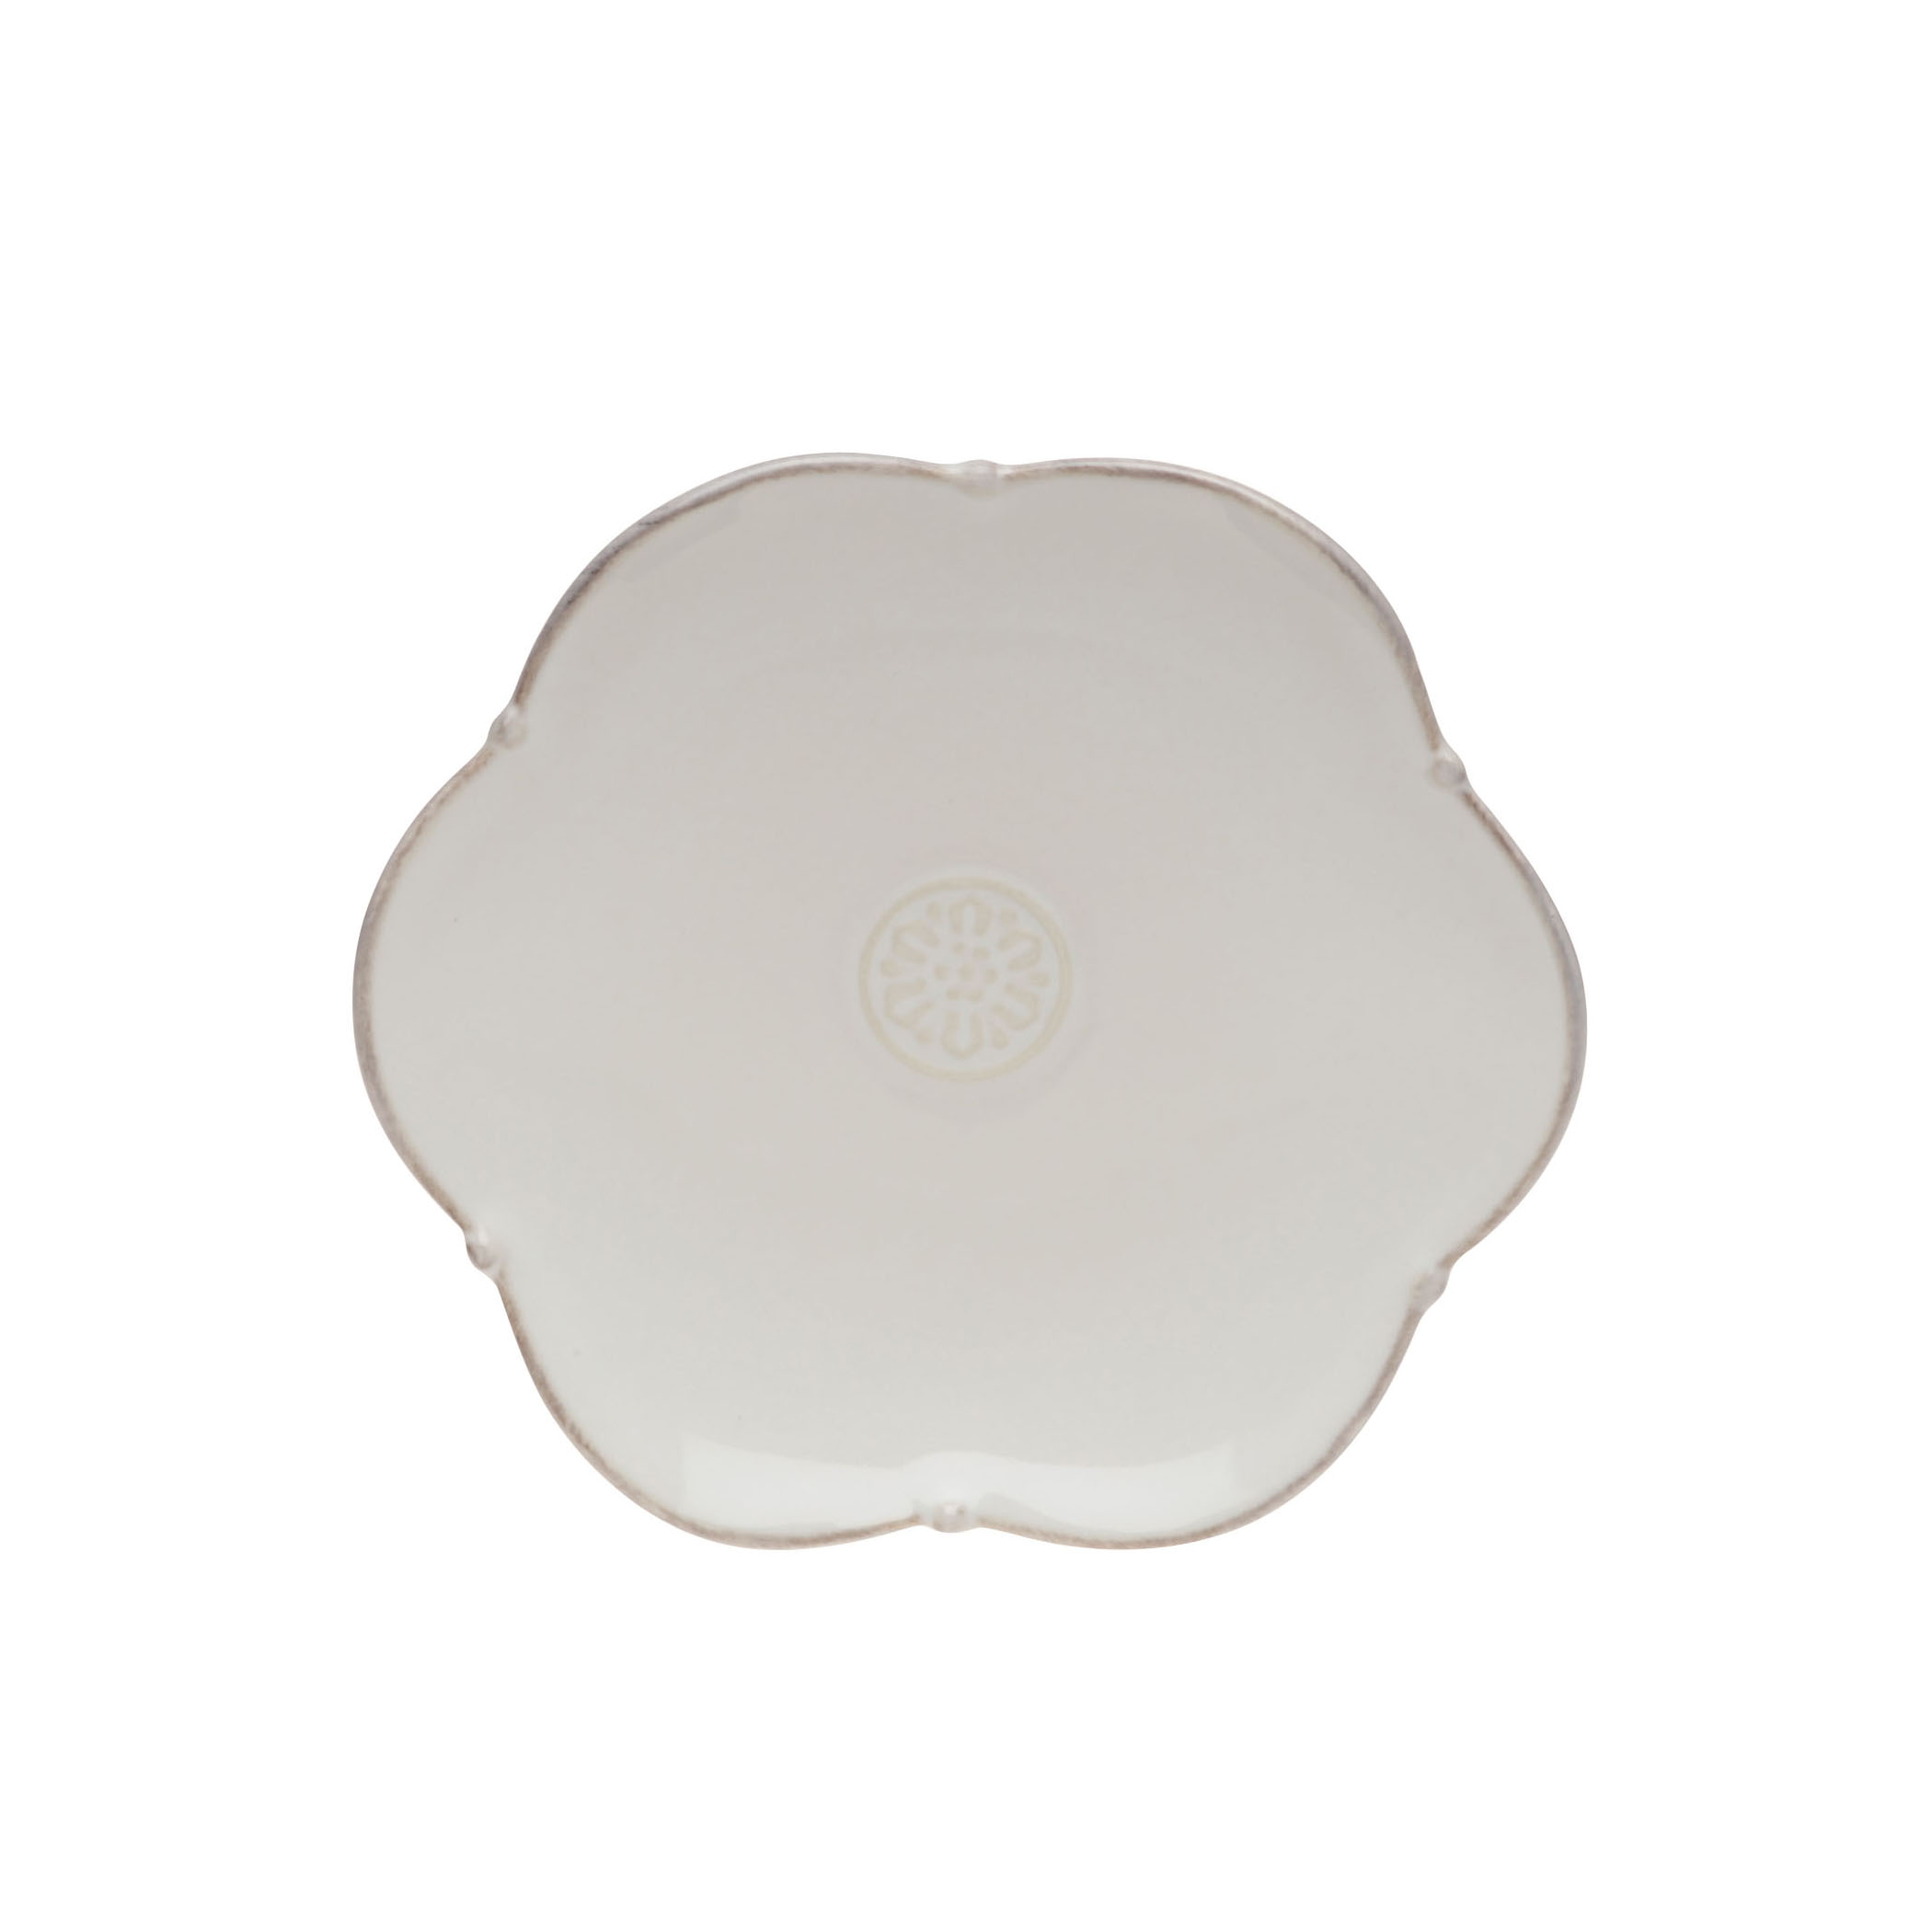 Meridian Bread Plate White 16.5cm Sparkle Gift